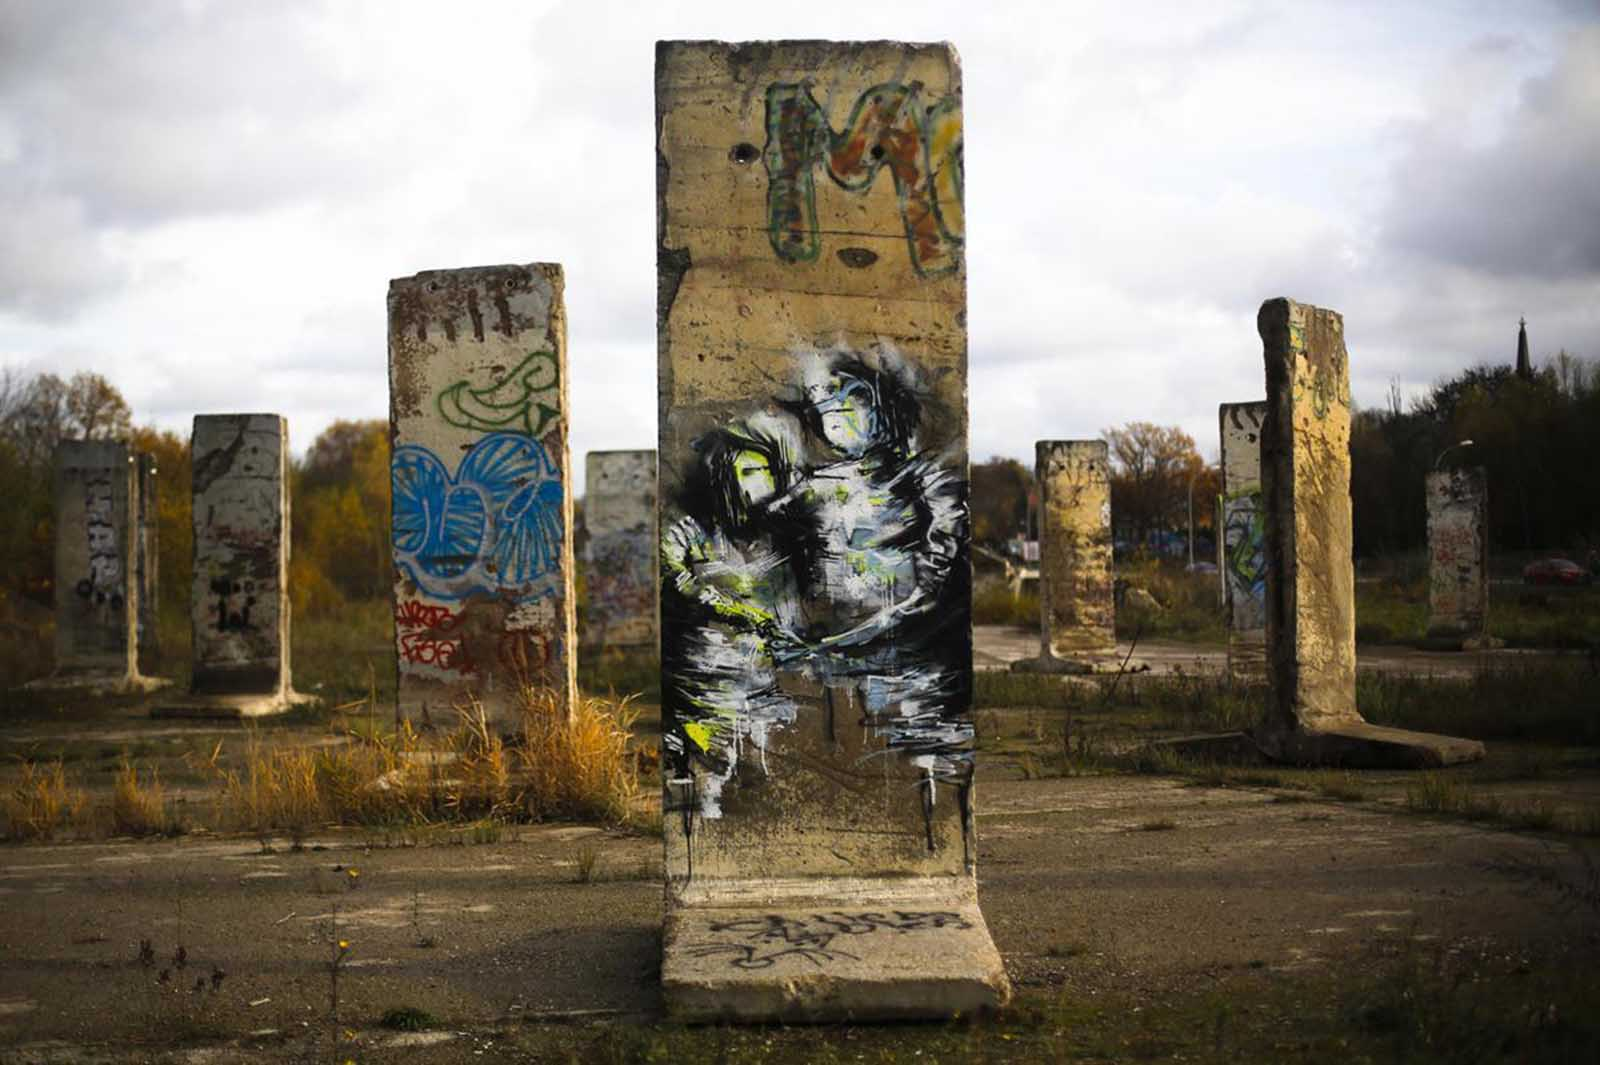 Decades later, the Berlin Wall is a memory, pieces of it scattered around the world. Here, some original pieces of the wall are displayed for sale at the city of Teltow near Berlin, on November 8, 2013